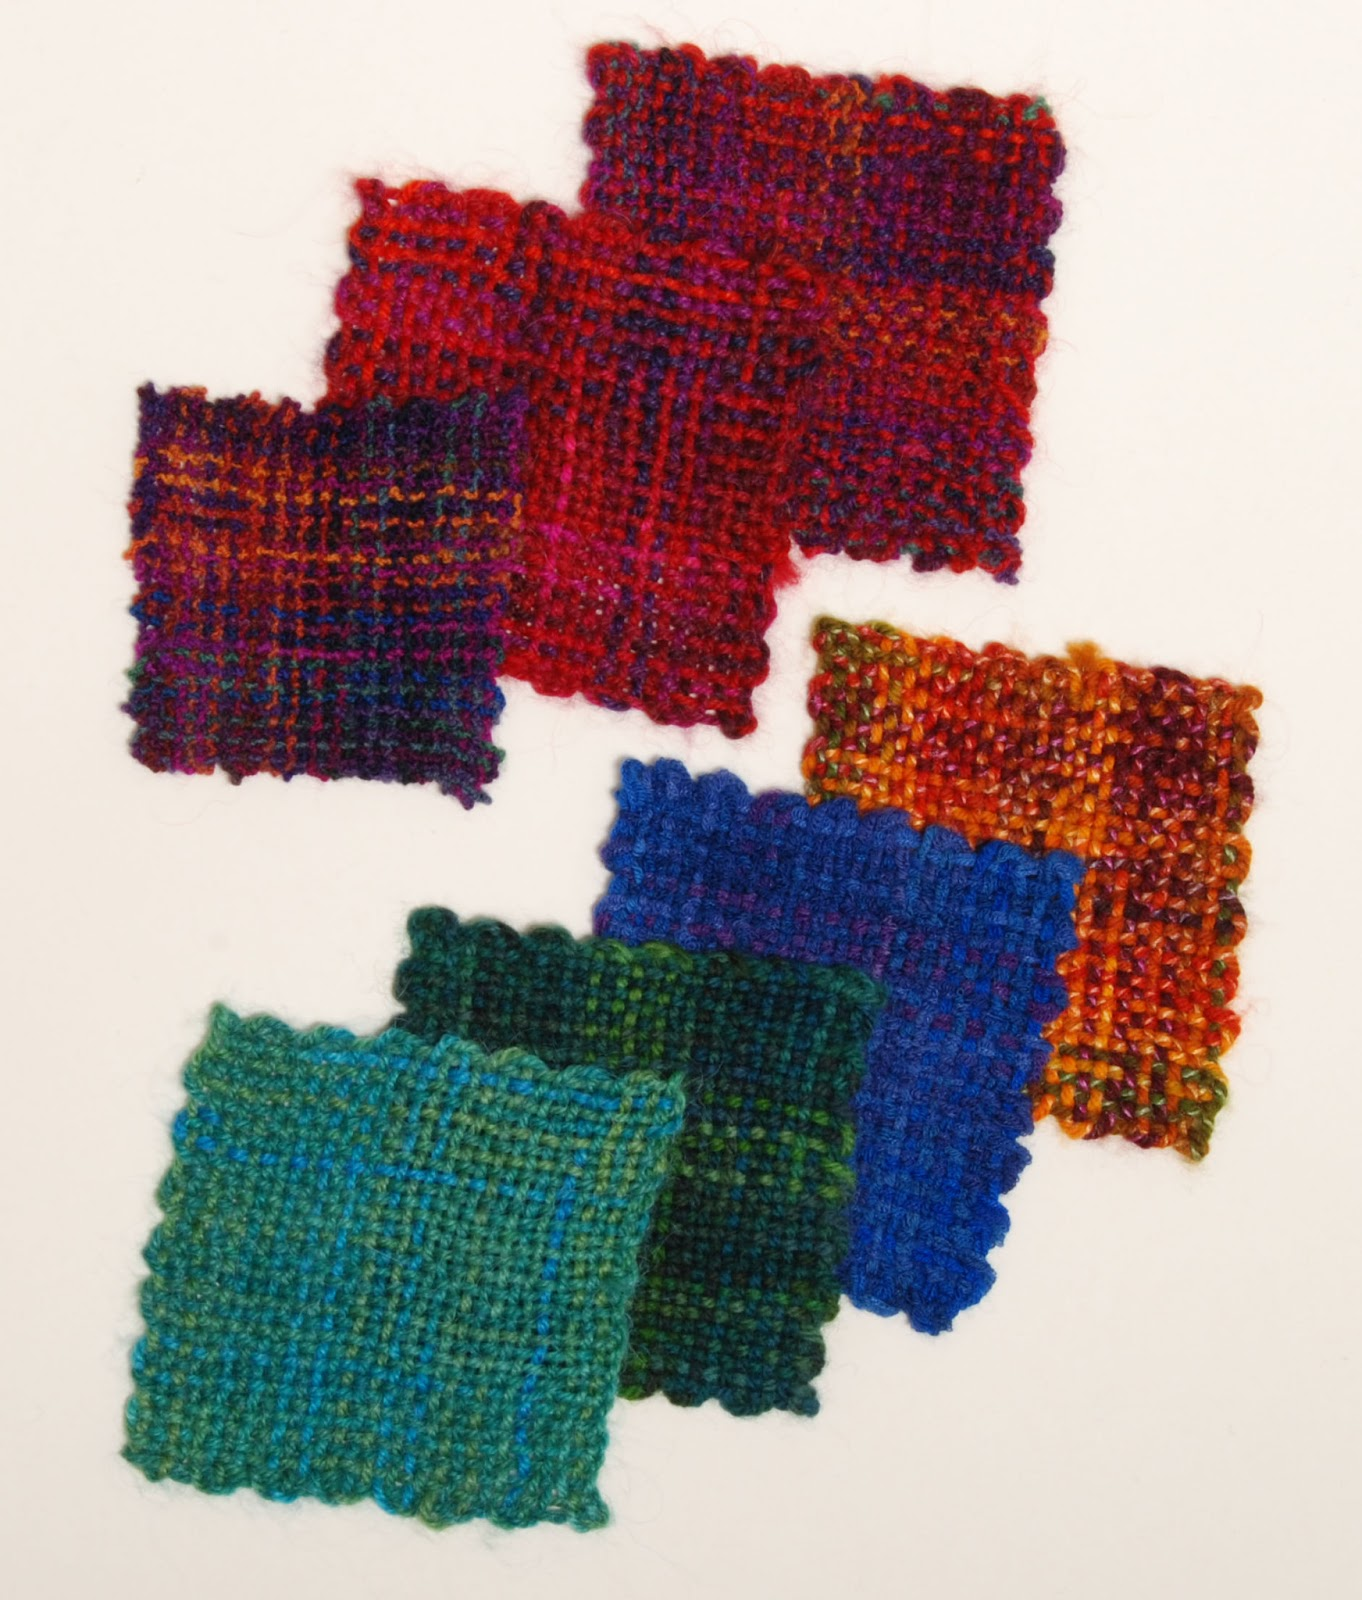 Mountain Colors - various yarns